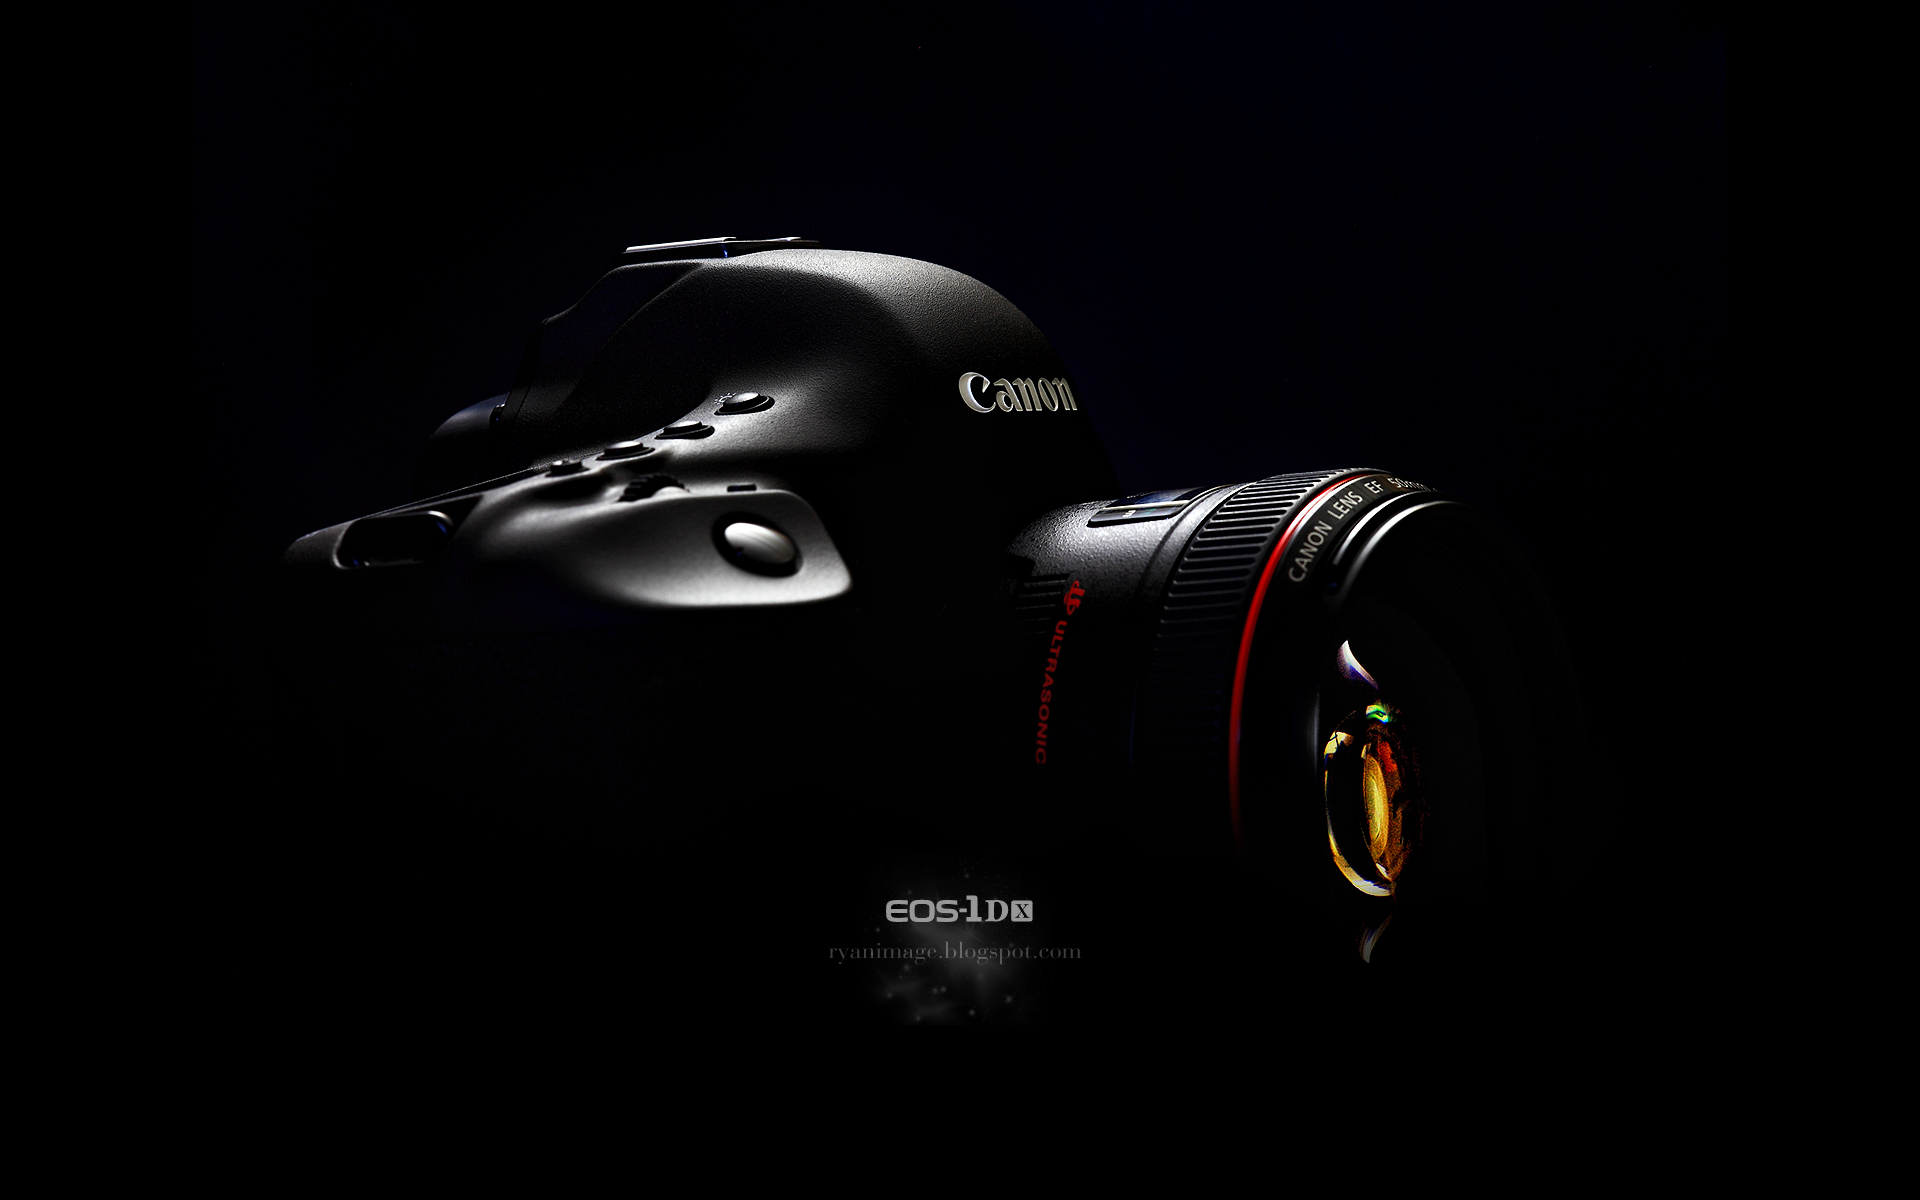 hd canon wallpaper full hd pictures